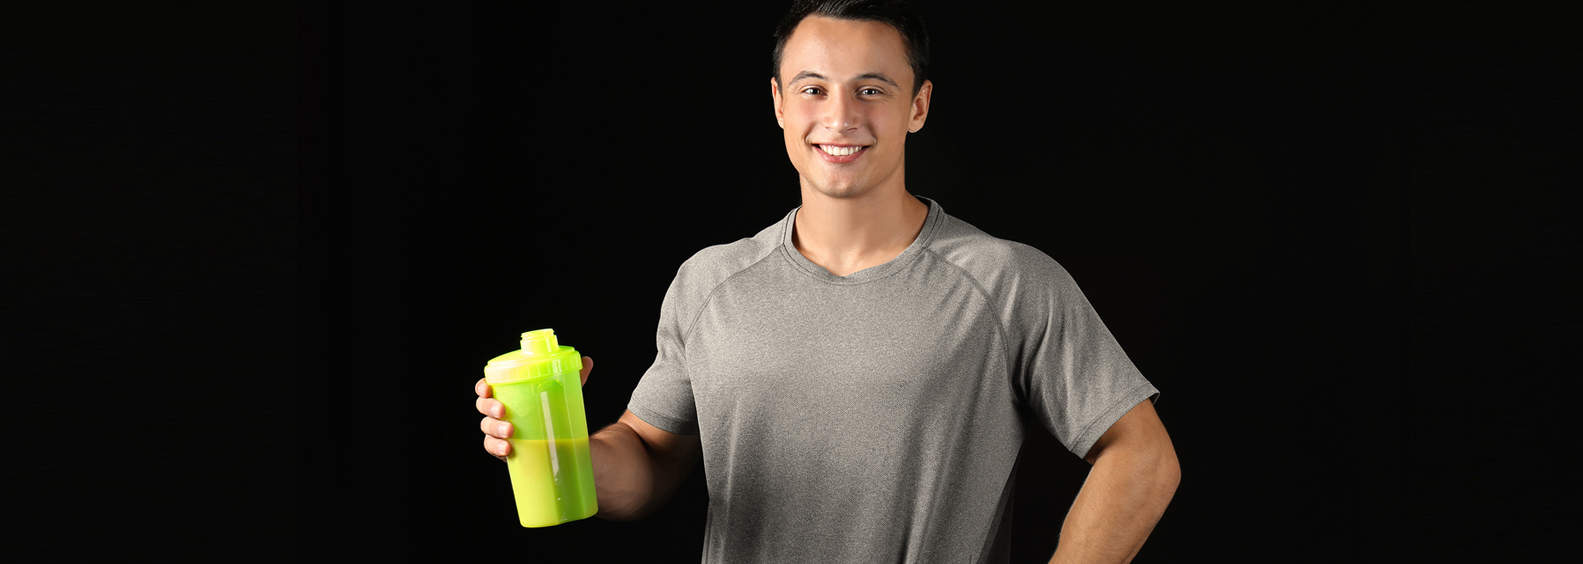 Best Meal Replacement Shakes for Weight Loss for Men